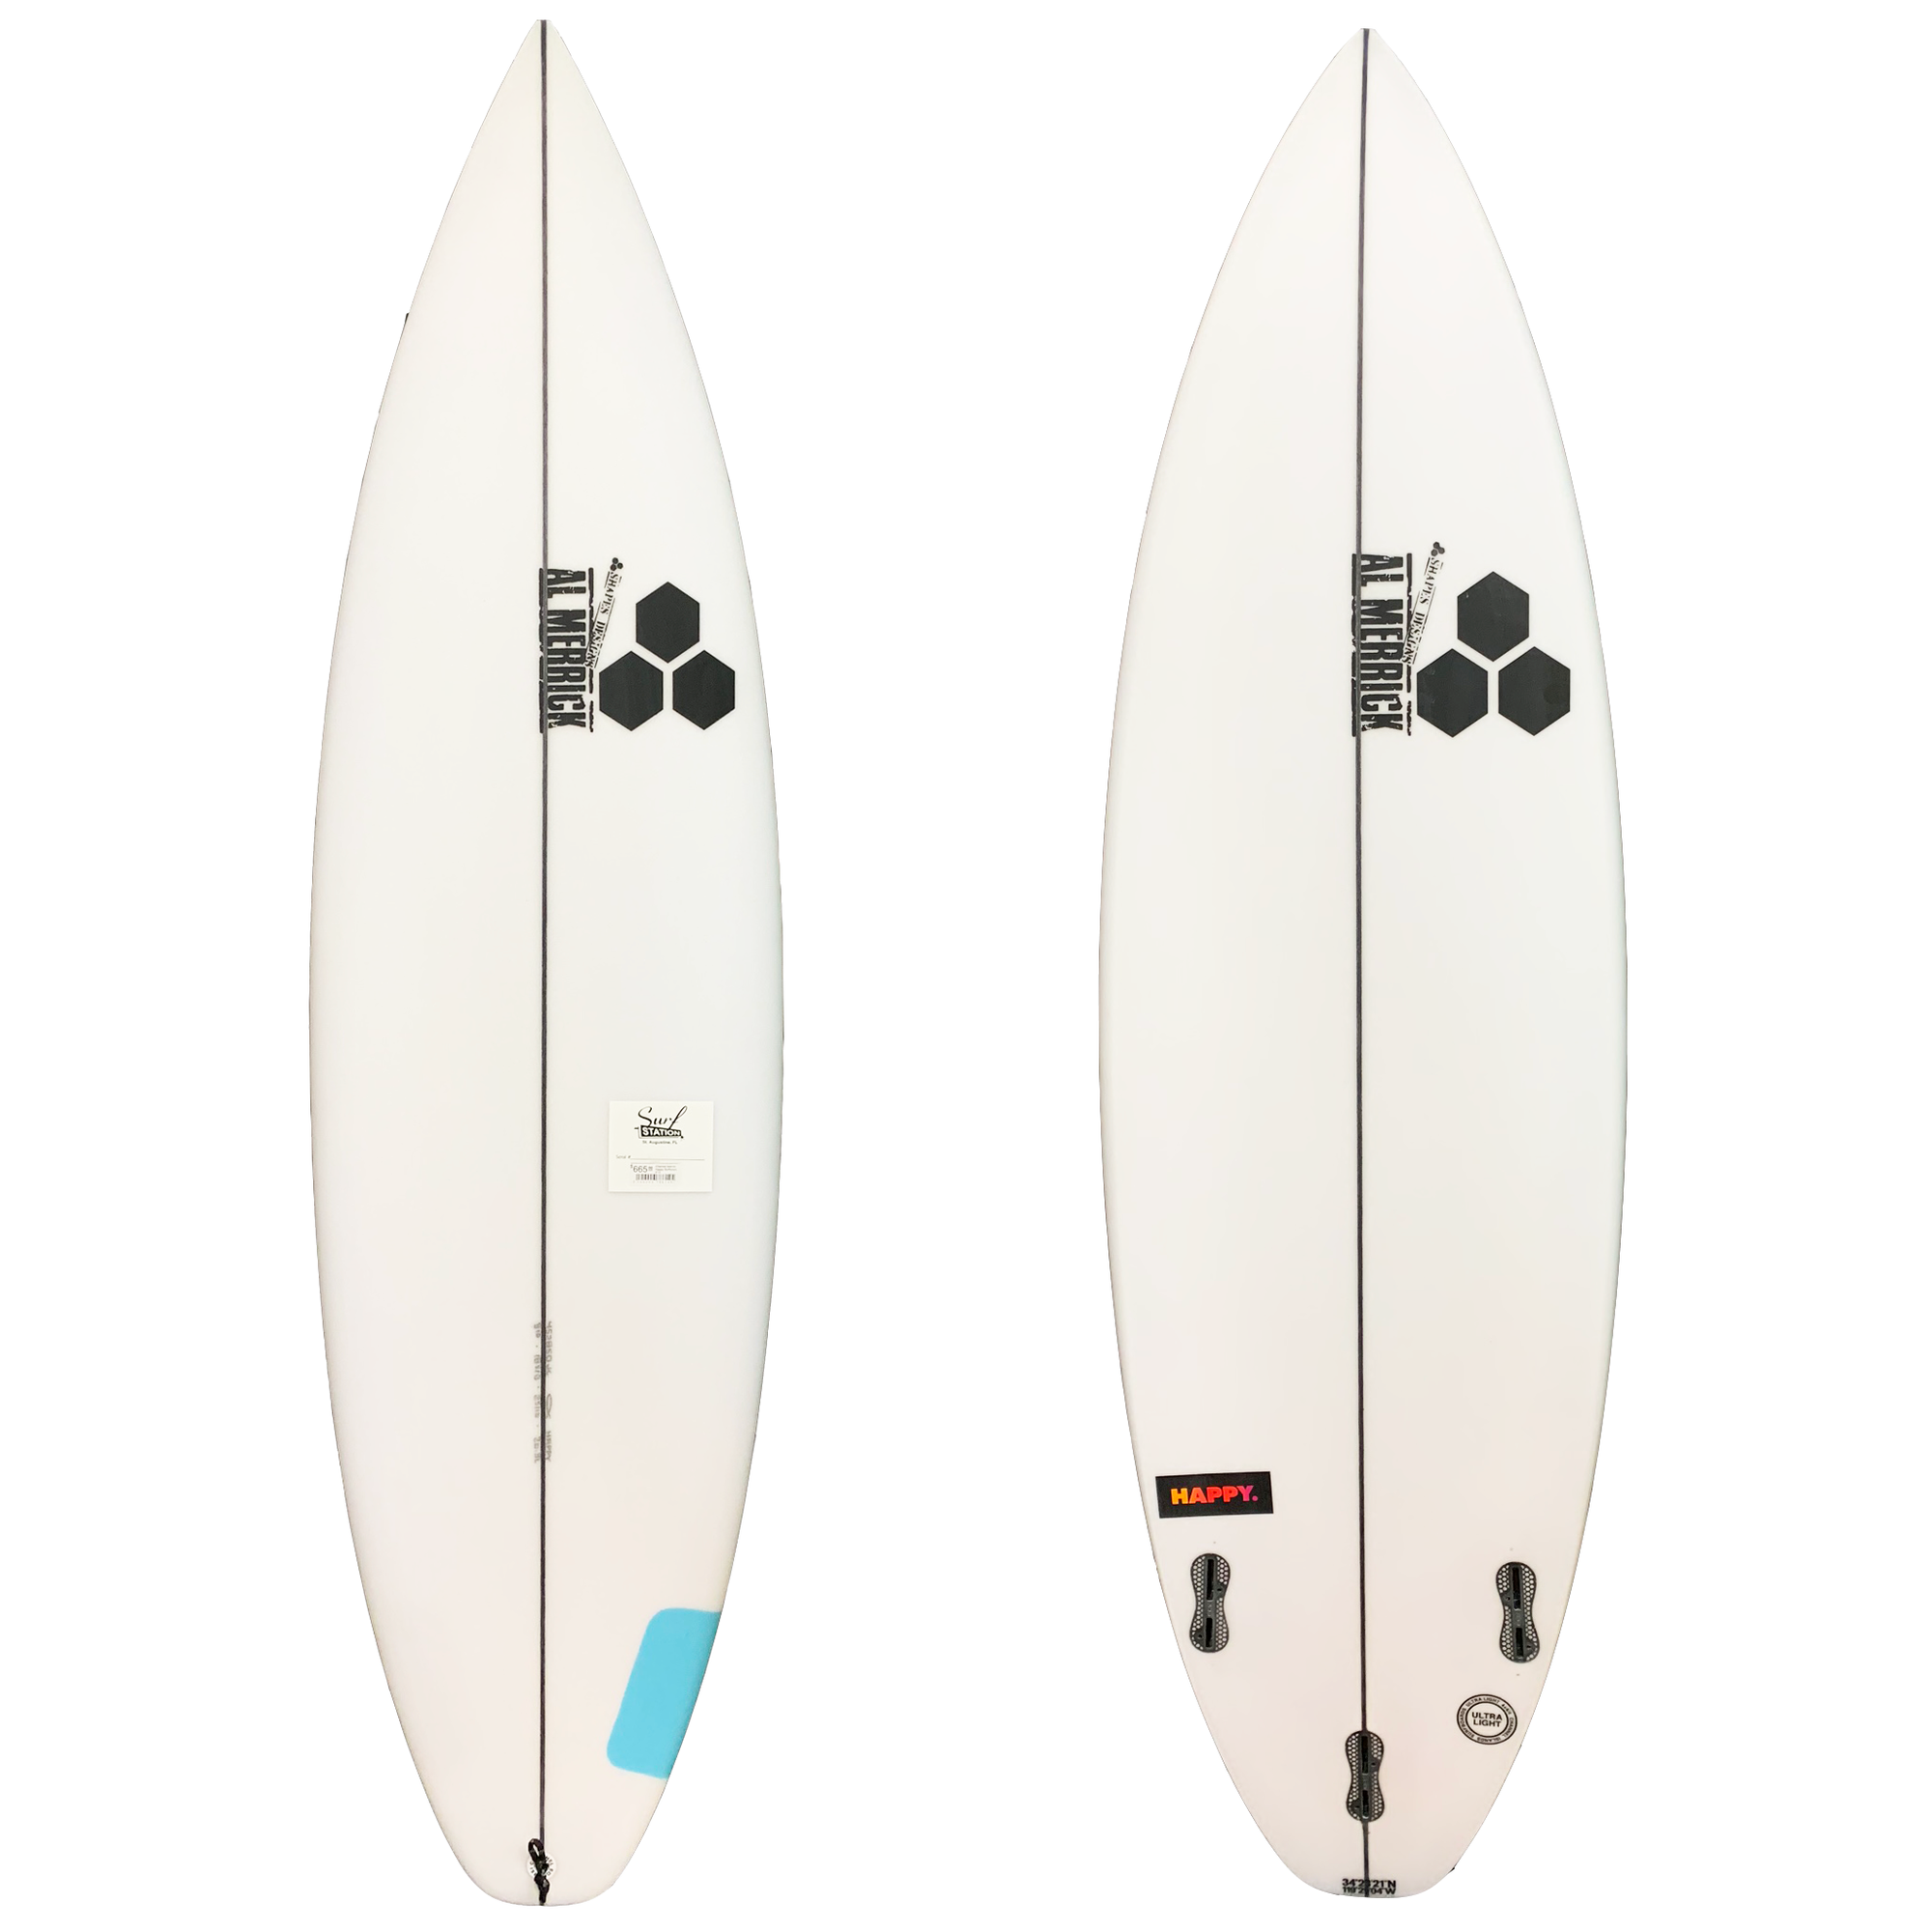 Channel Islands Happy Plus Surfboard - FCS II